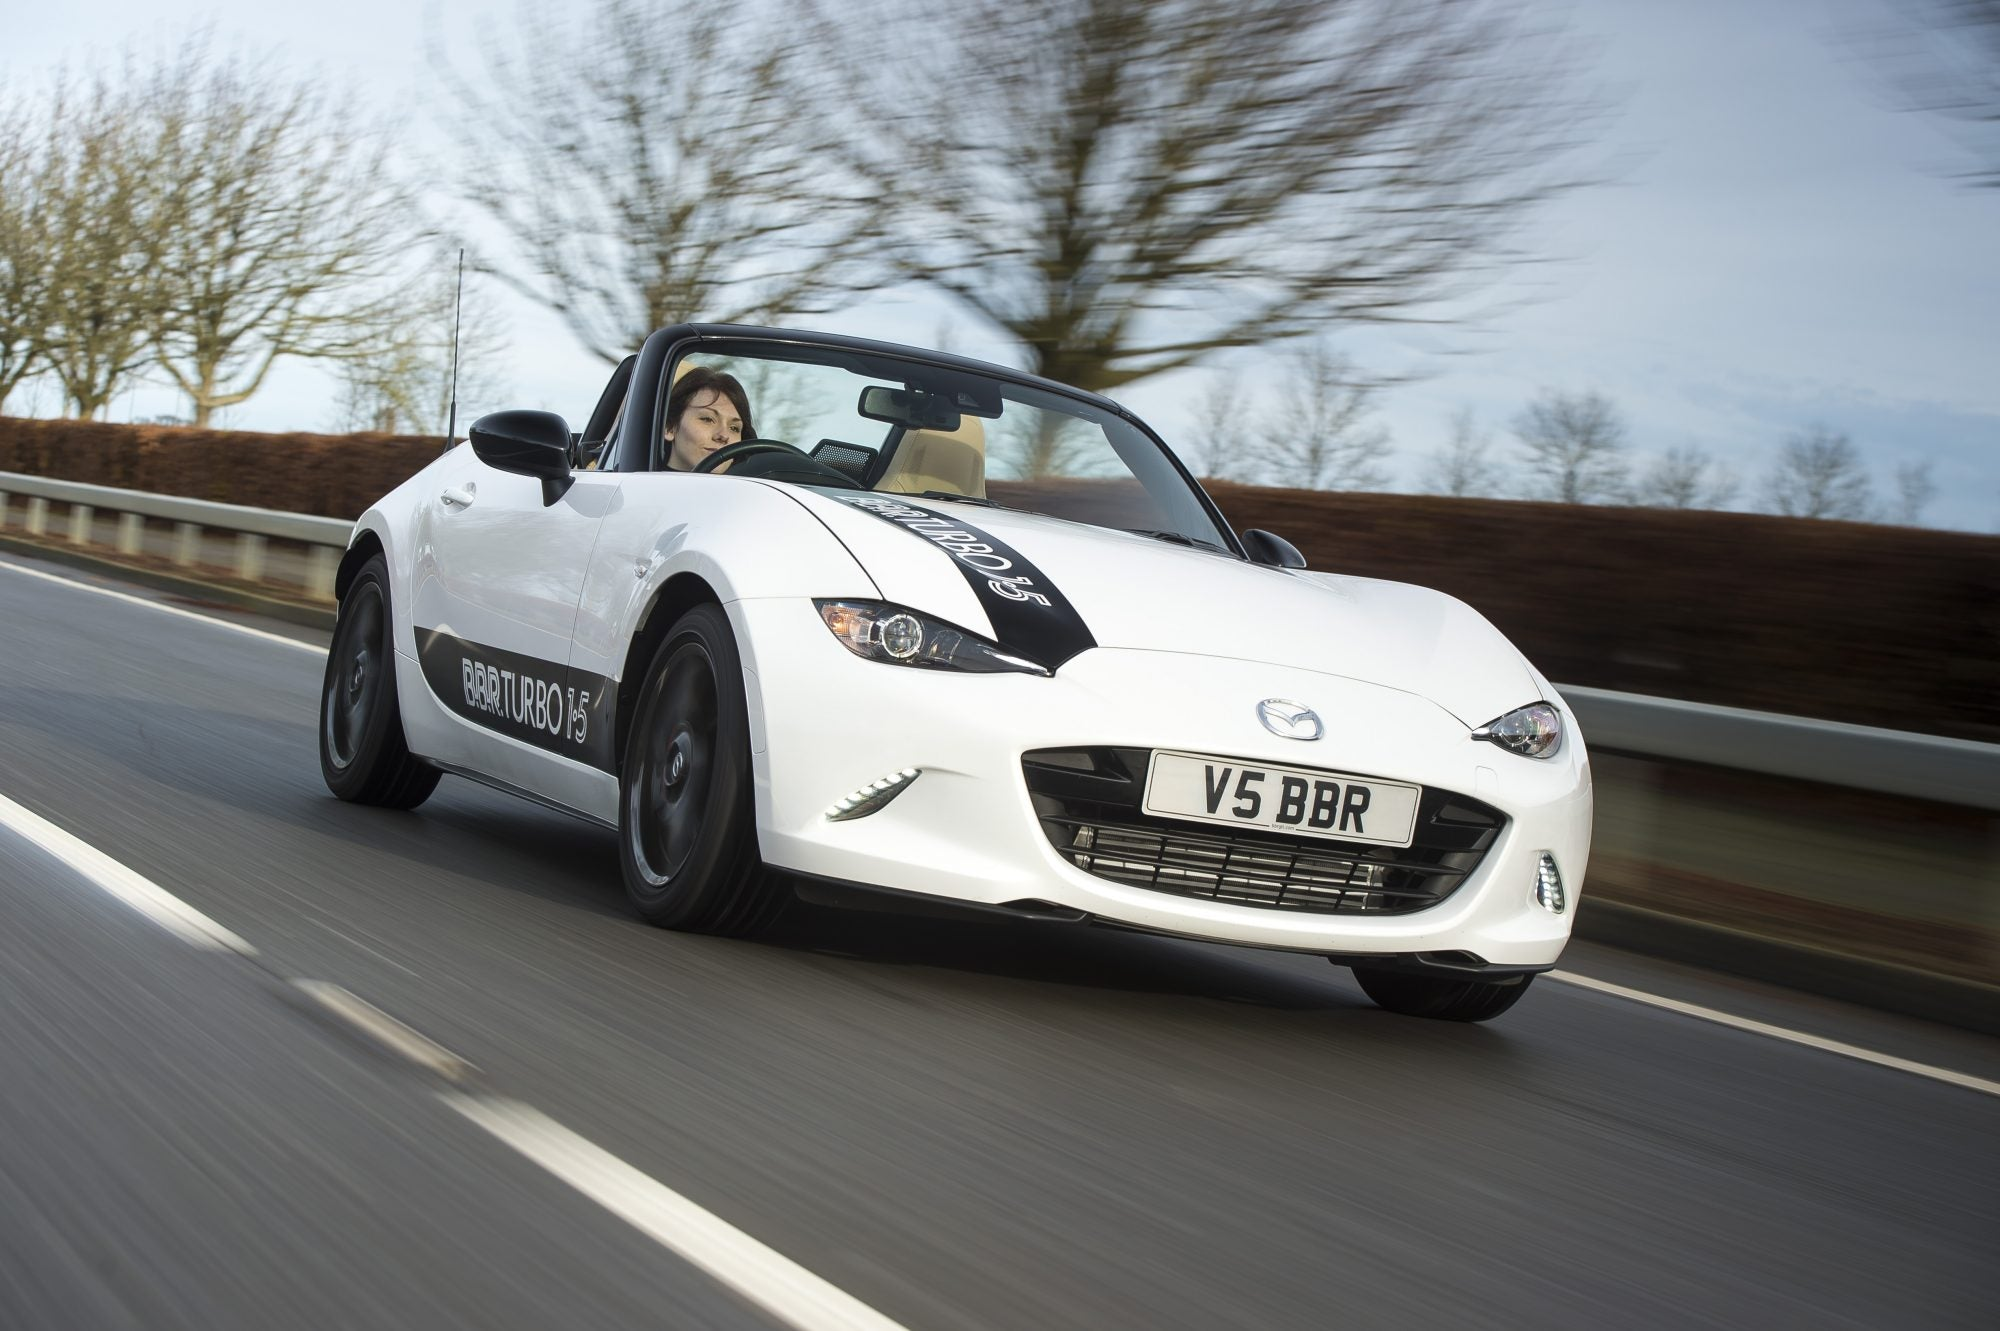 BBR 210 bhp turbocharger upgrade now available for 1.5-litre engine MX-5 ND variants